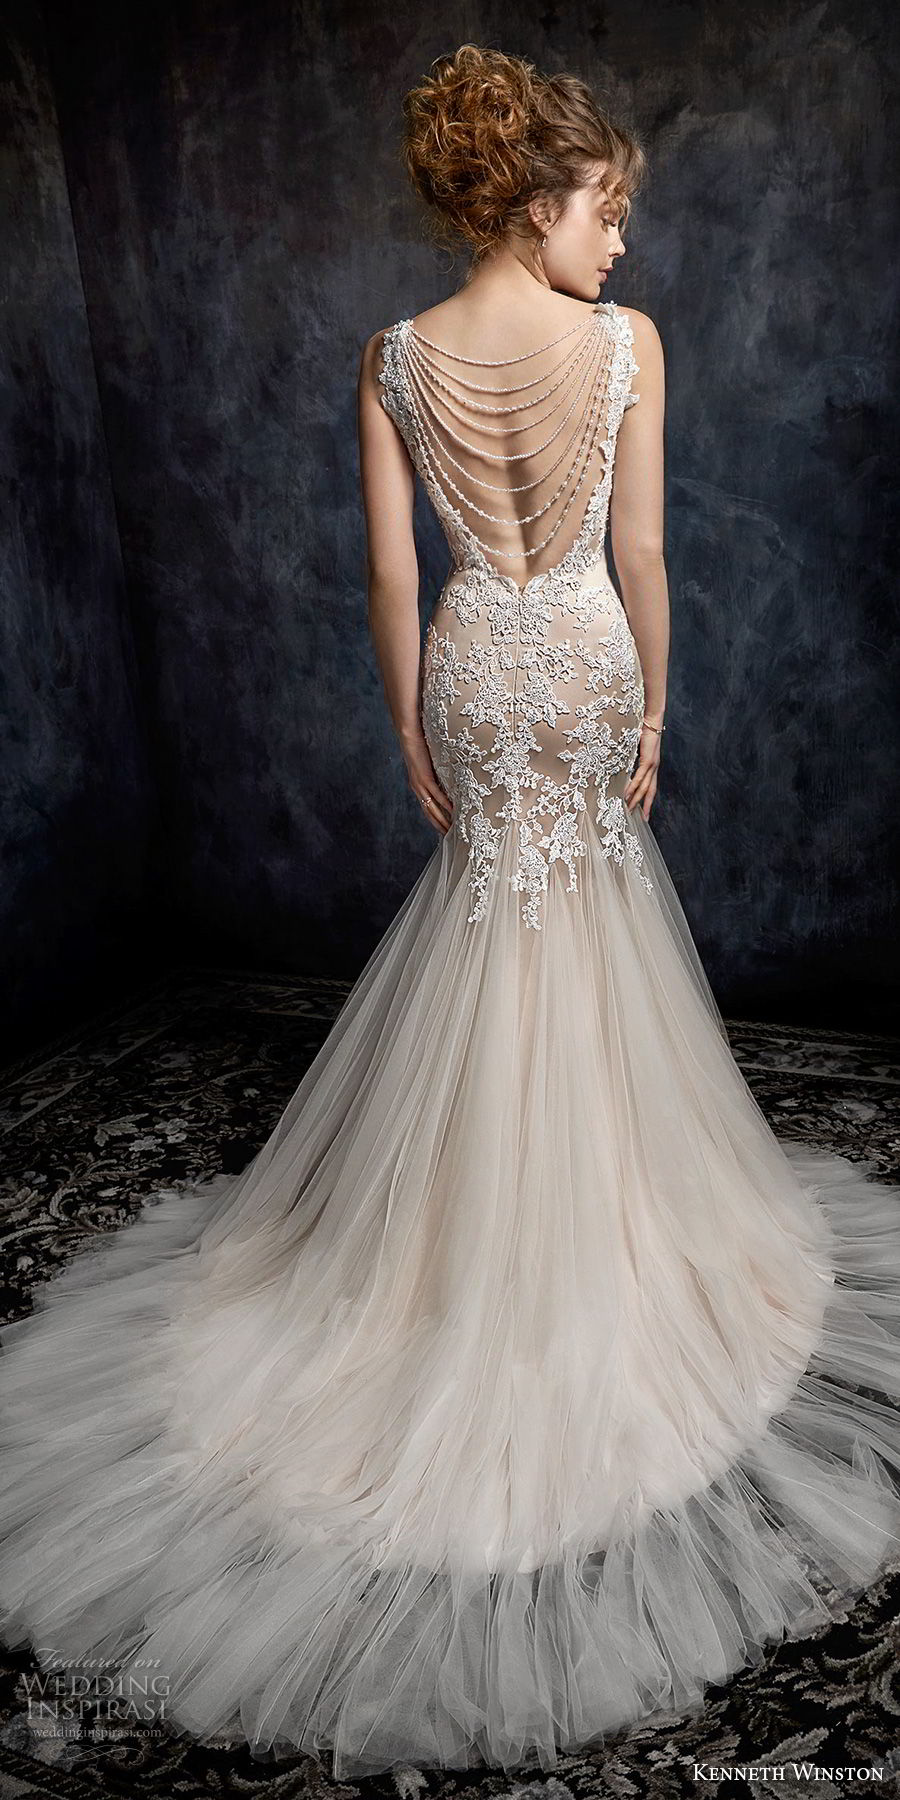 kenneth winston fall 2017 bridal sleeveless embroidered strap sweetheart neckline heavily embellished bodice tulle skirt romantic mermaid wedding dress open back chapel train (27) bv